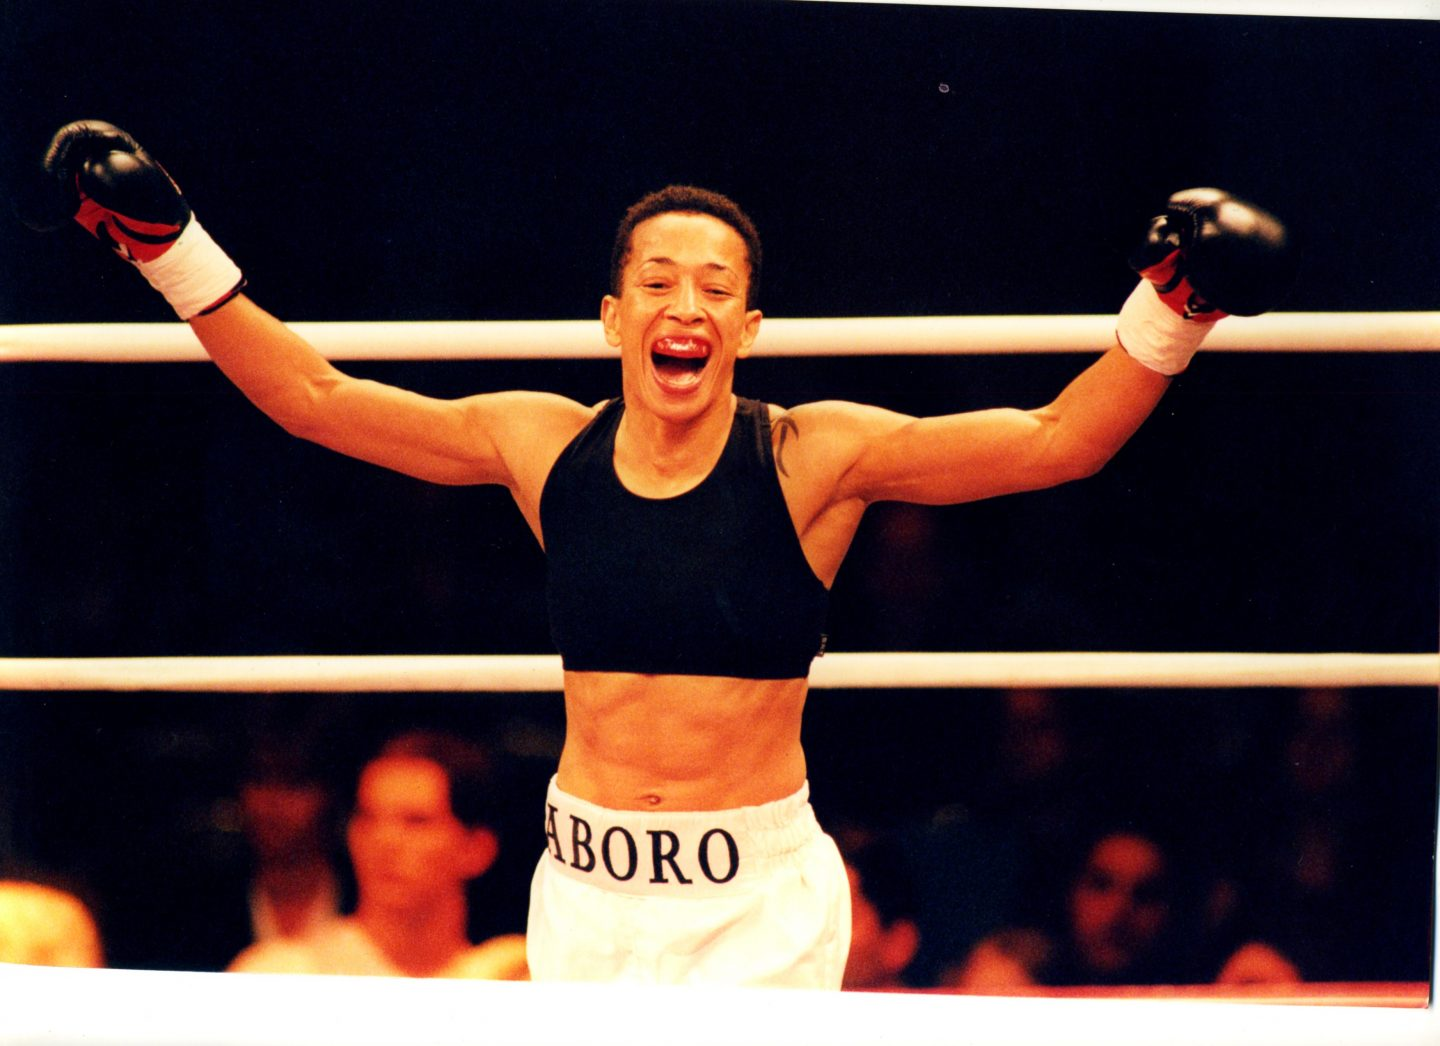 Michele-Aboro-boxing-winning-vicotry-pose-smiling-black-shirt-white-shorts